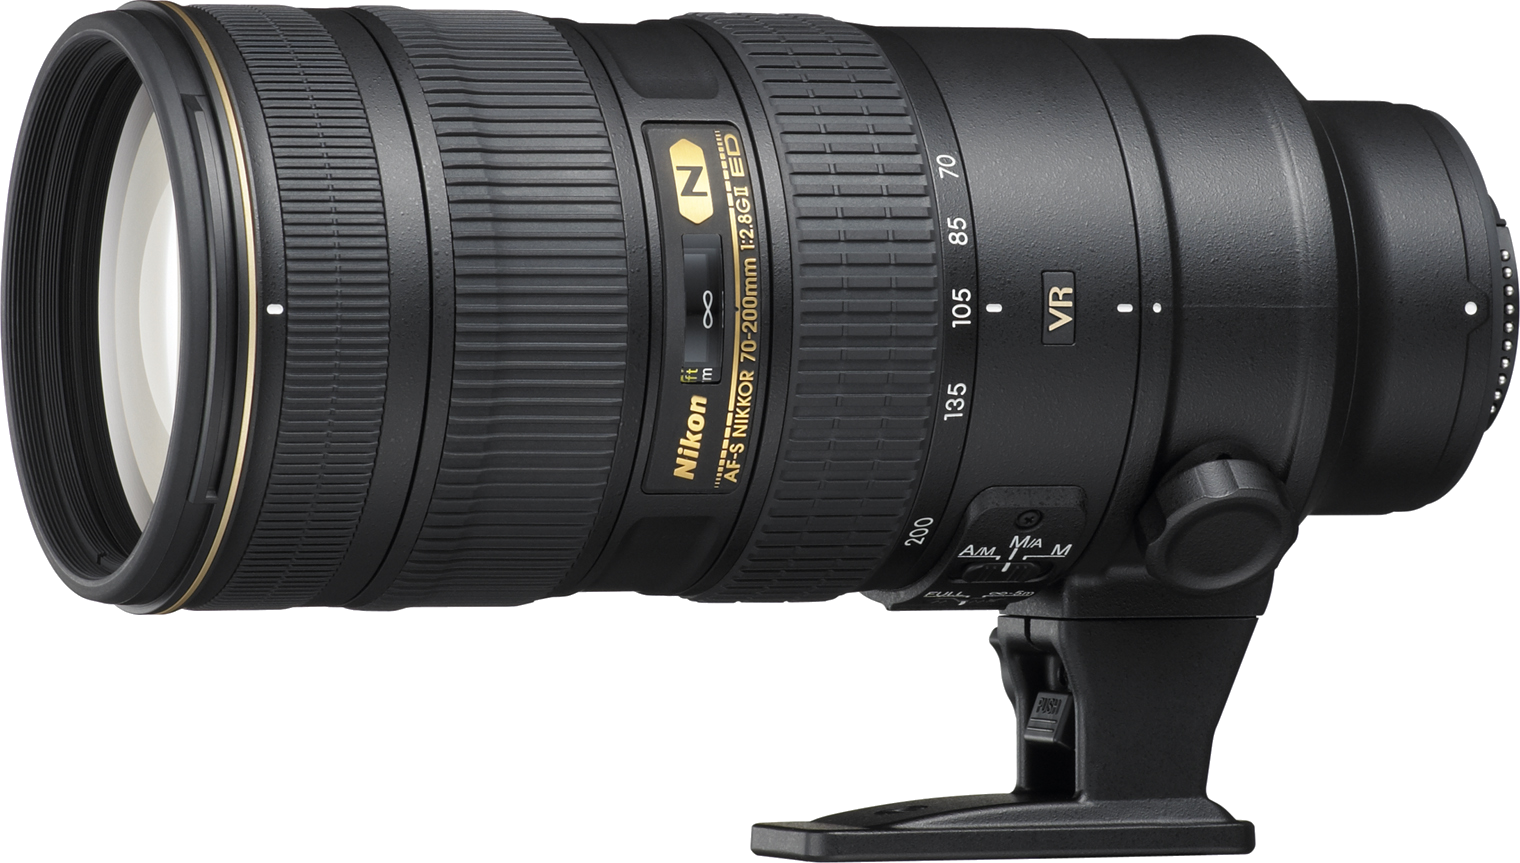 The standard in sports photography zoom lenses.  Great for high action and low light conditions.  This is the newer version II model of this lens.